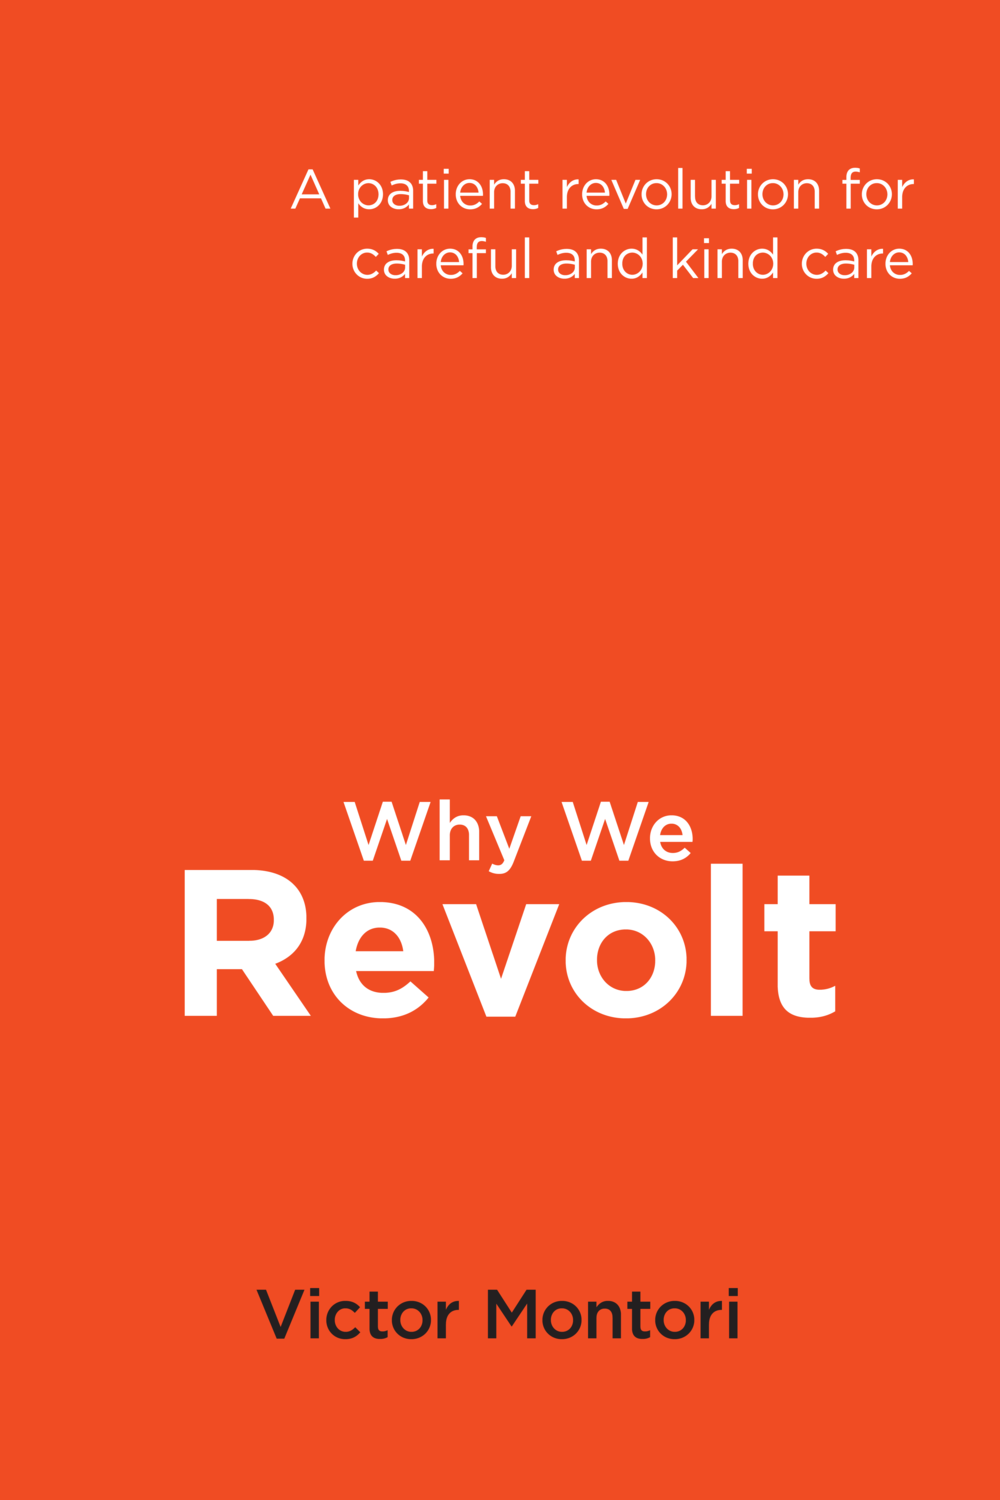 Why We Revolt